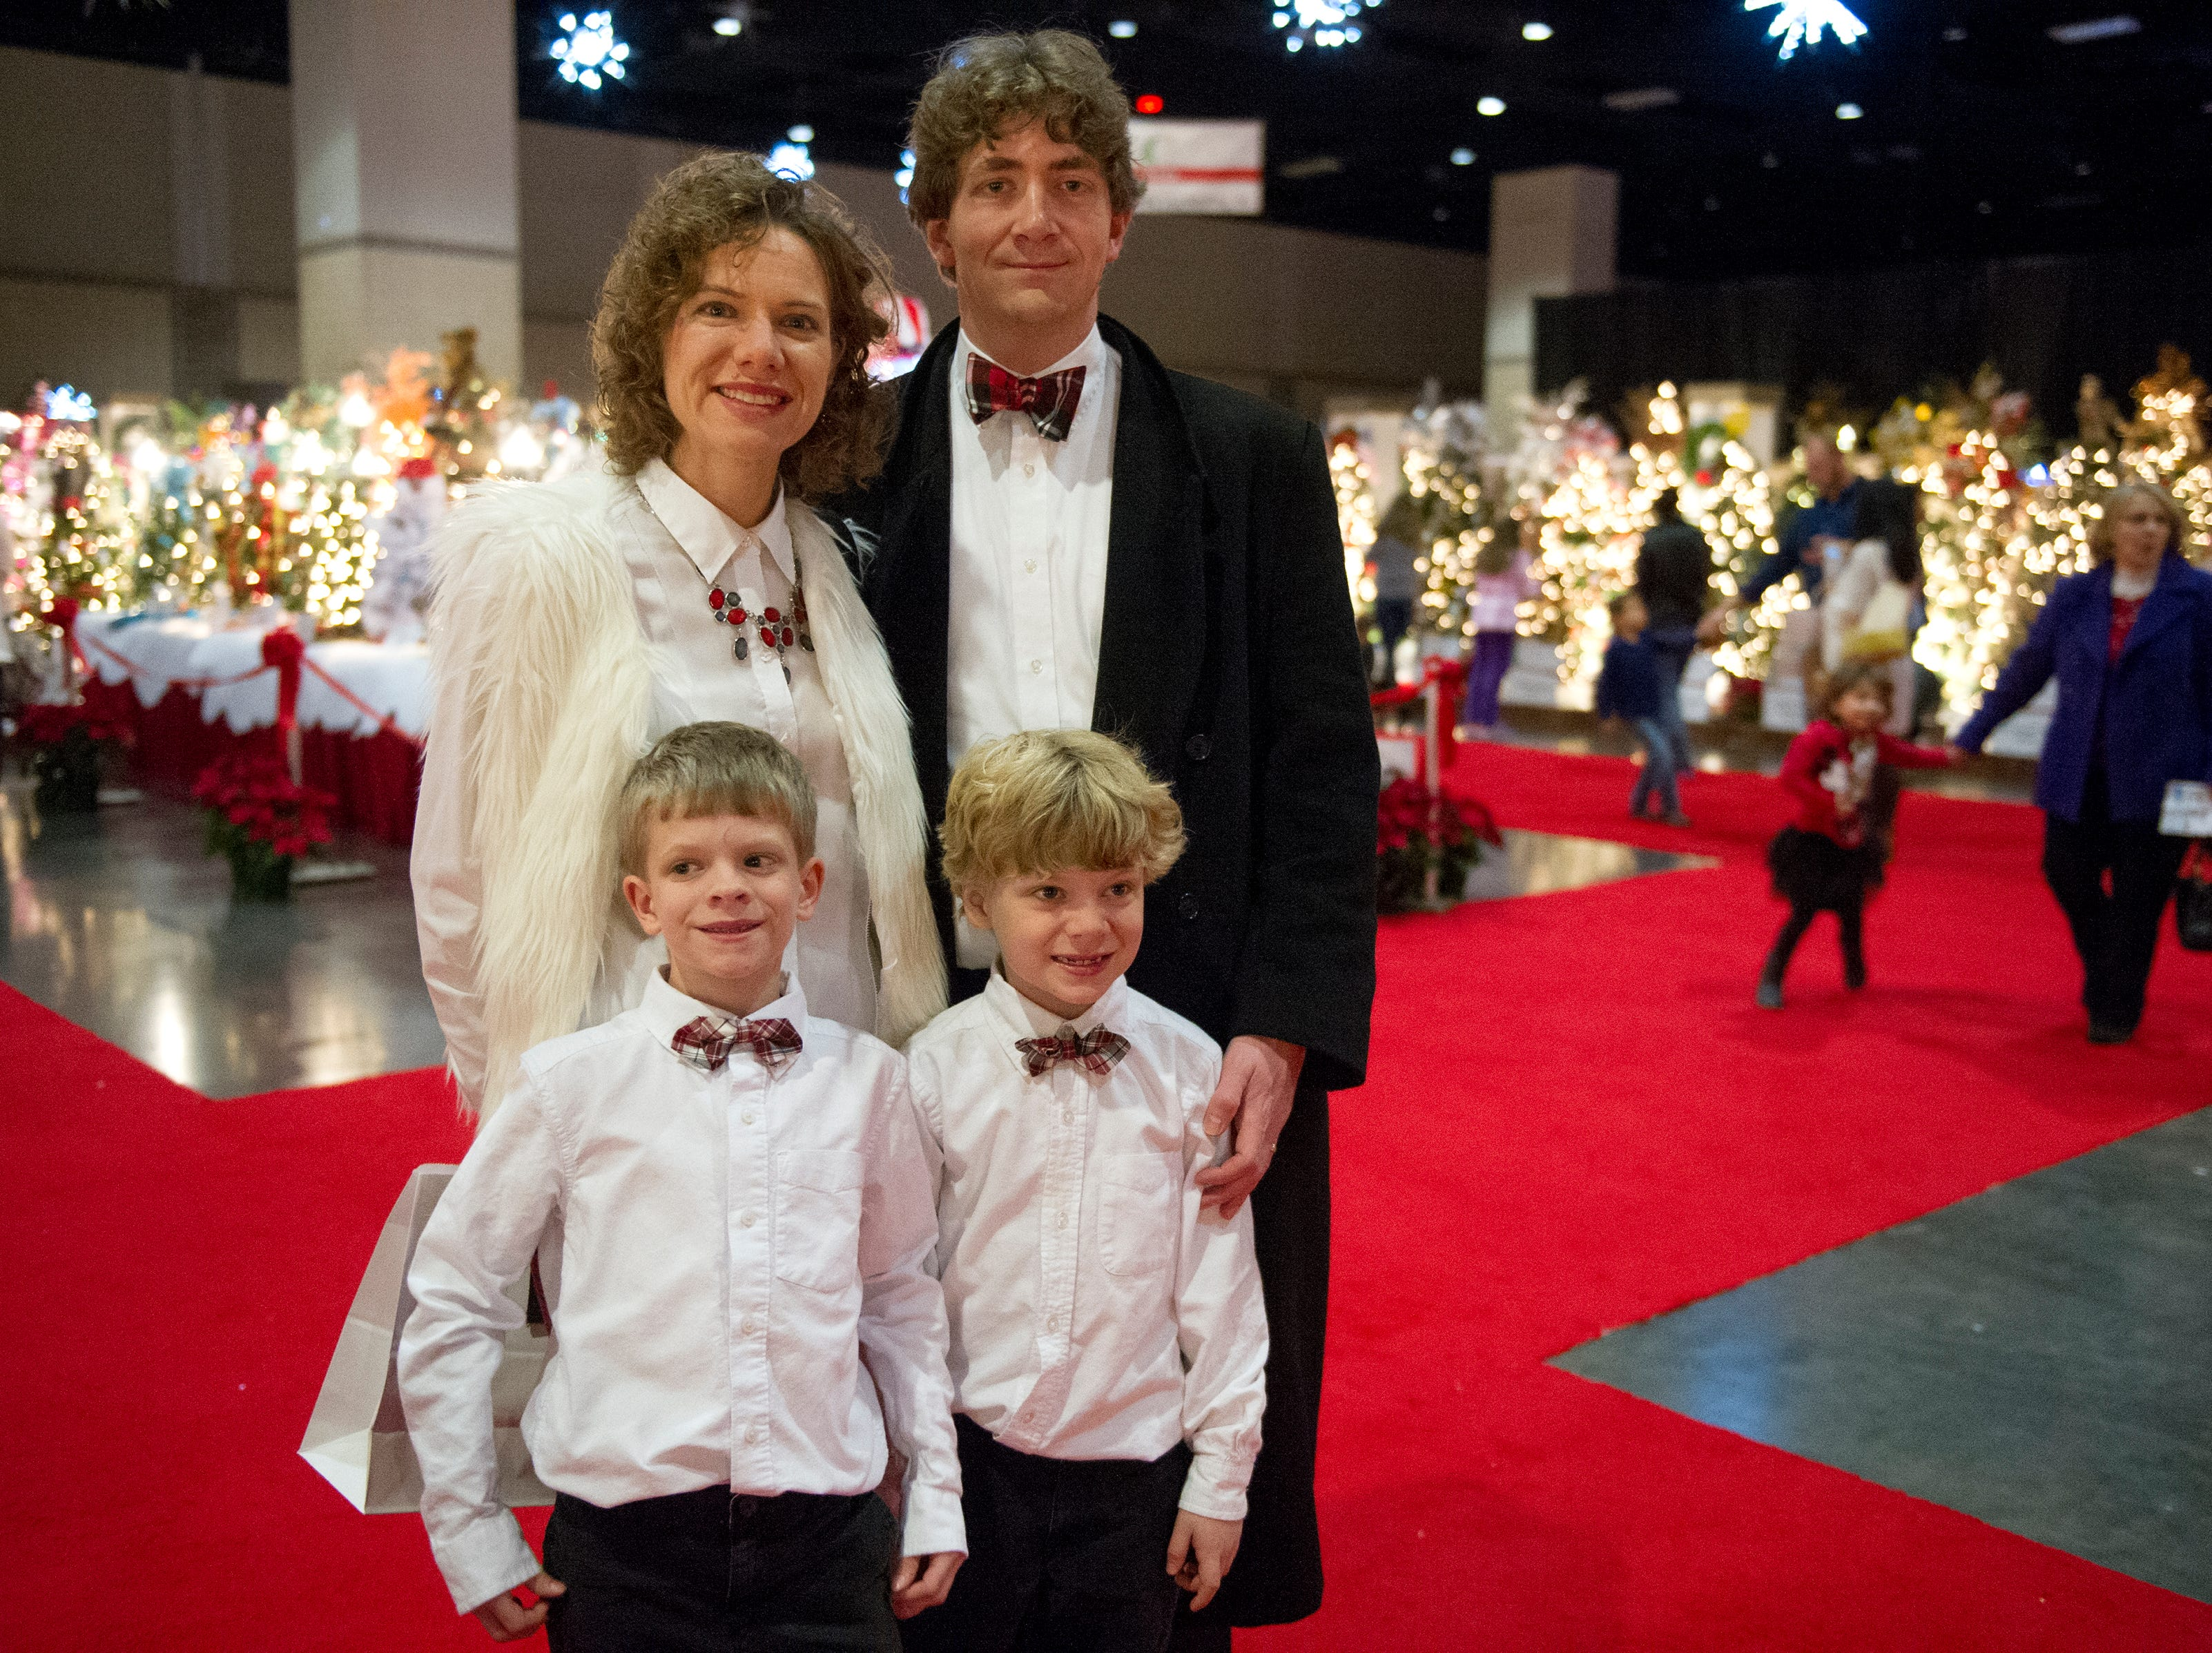 Amy Shewmake(from top left ), Tripp Shewmake, Hunter Shewmake, 8, (from bottom left) and Xander Shewmake, 6, all of Knoxville pose for a photo while at a family outing during the Fantasy of Trees at the Knoxville Convention Center Wednesday, Nov. 25, 2015. (JESSICA TEZAK/NEWS SENTINEL)